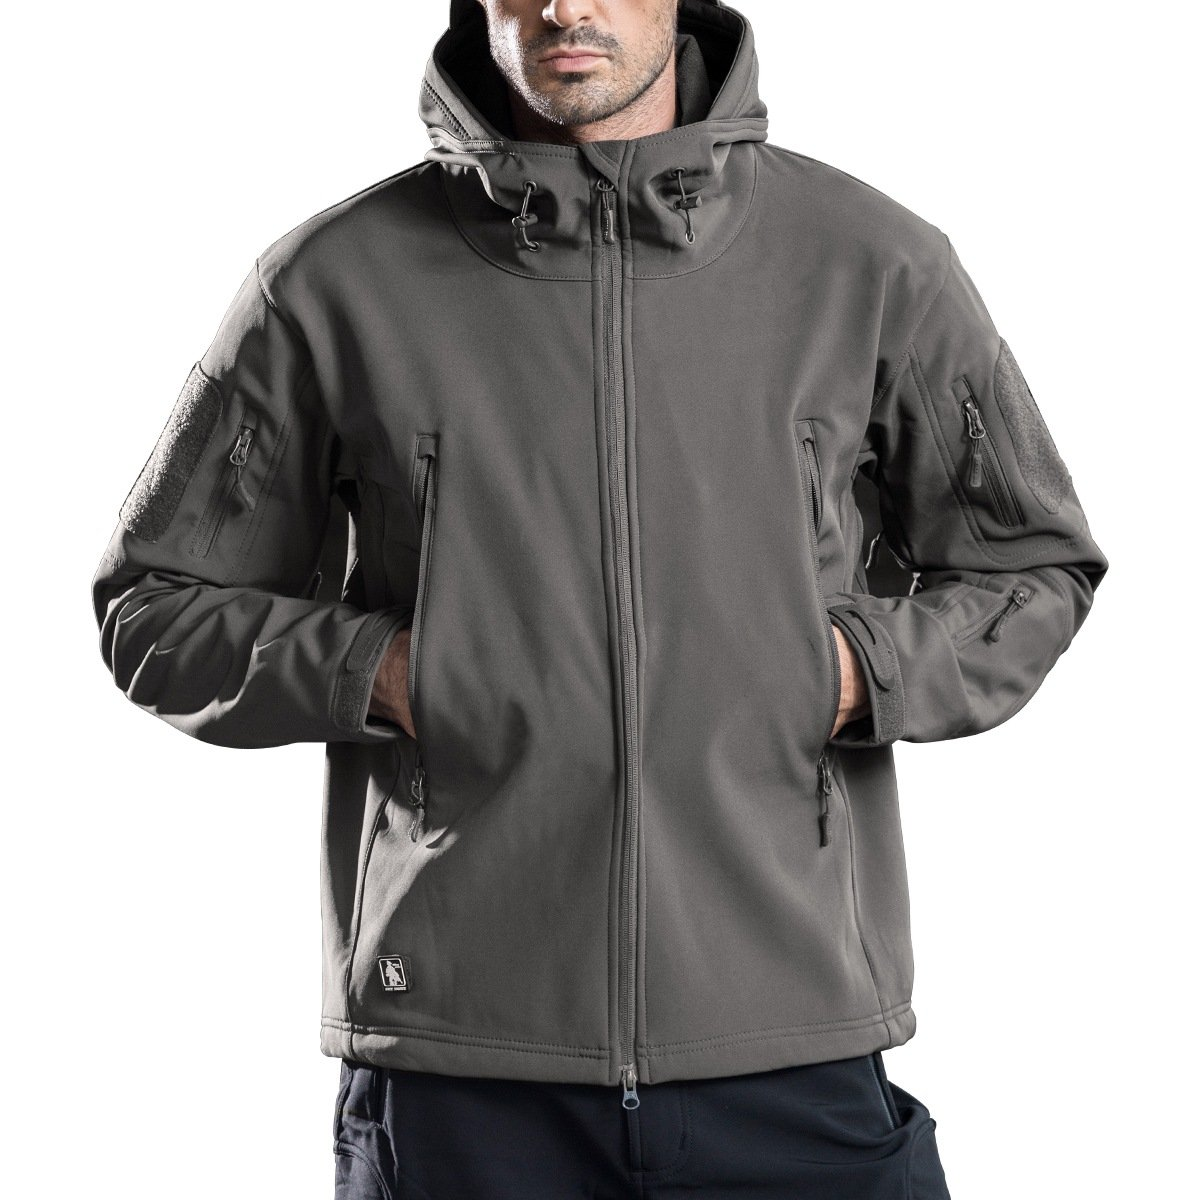 FREE SOLDIER Men's Outdoor Waterproof Soft Shell Hooded Military Tactical Jacket F & S Co. Ltd